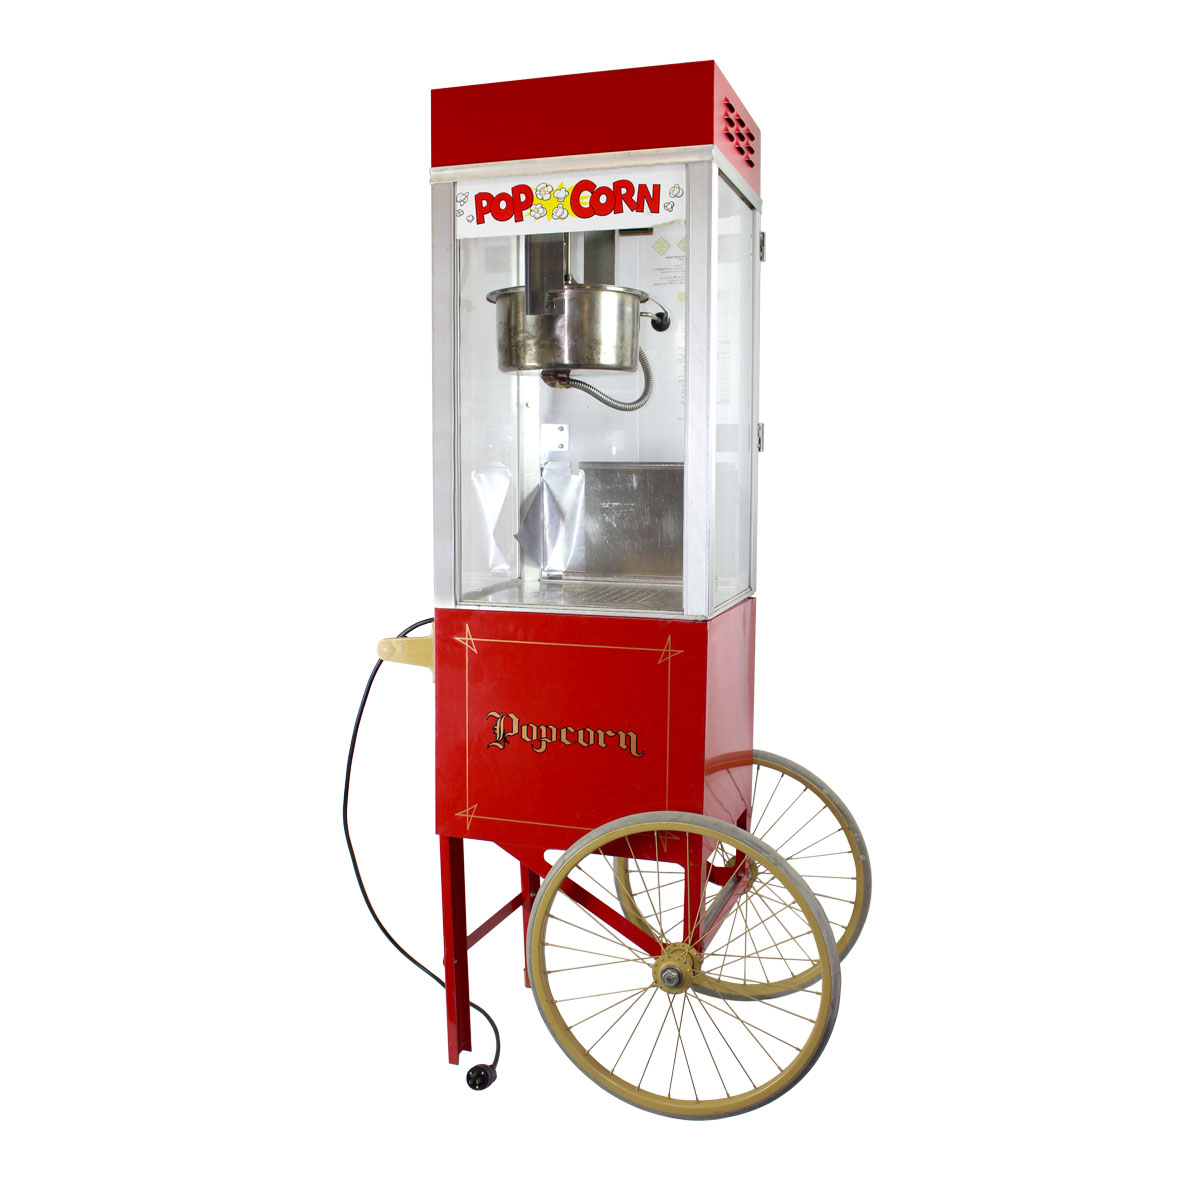 Popcorn Machine with Cart on Wheels